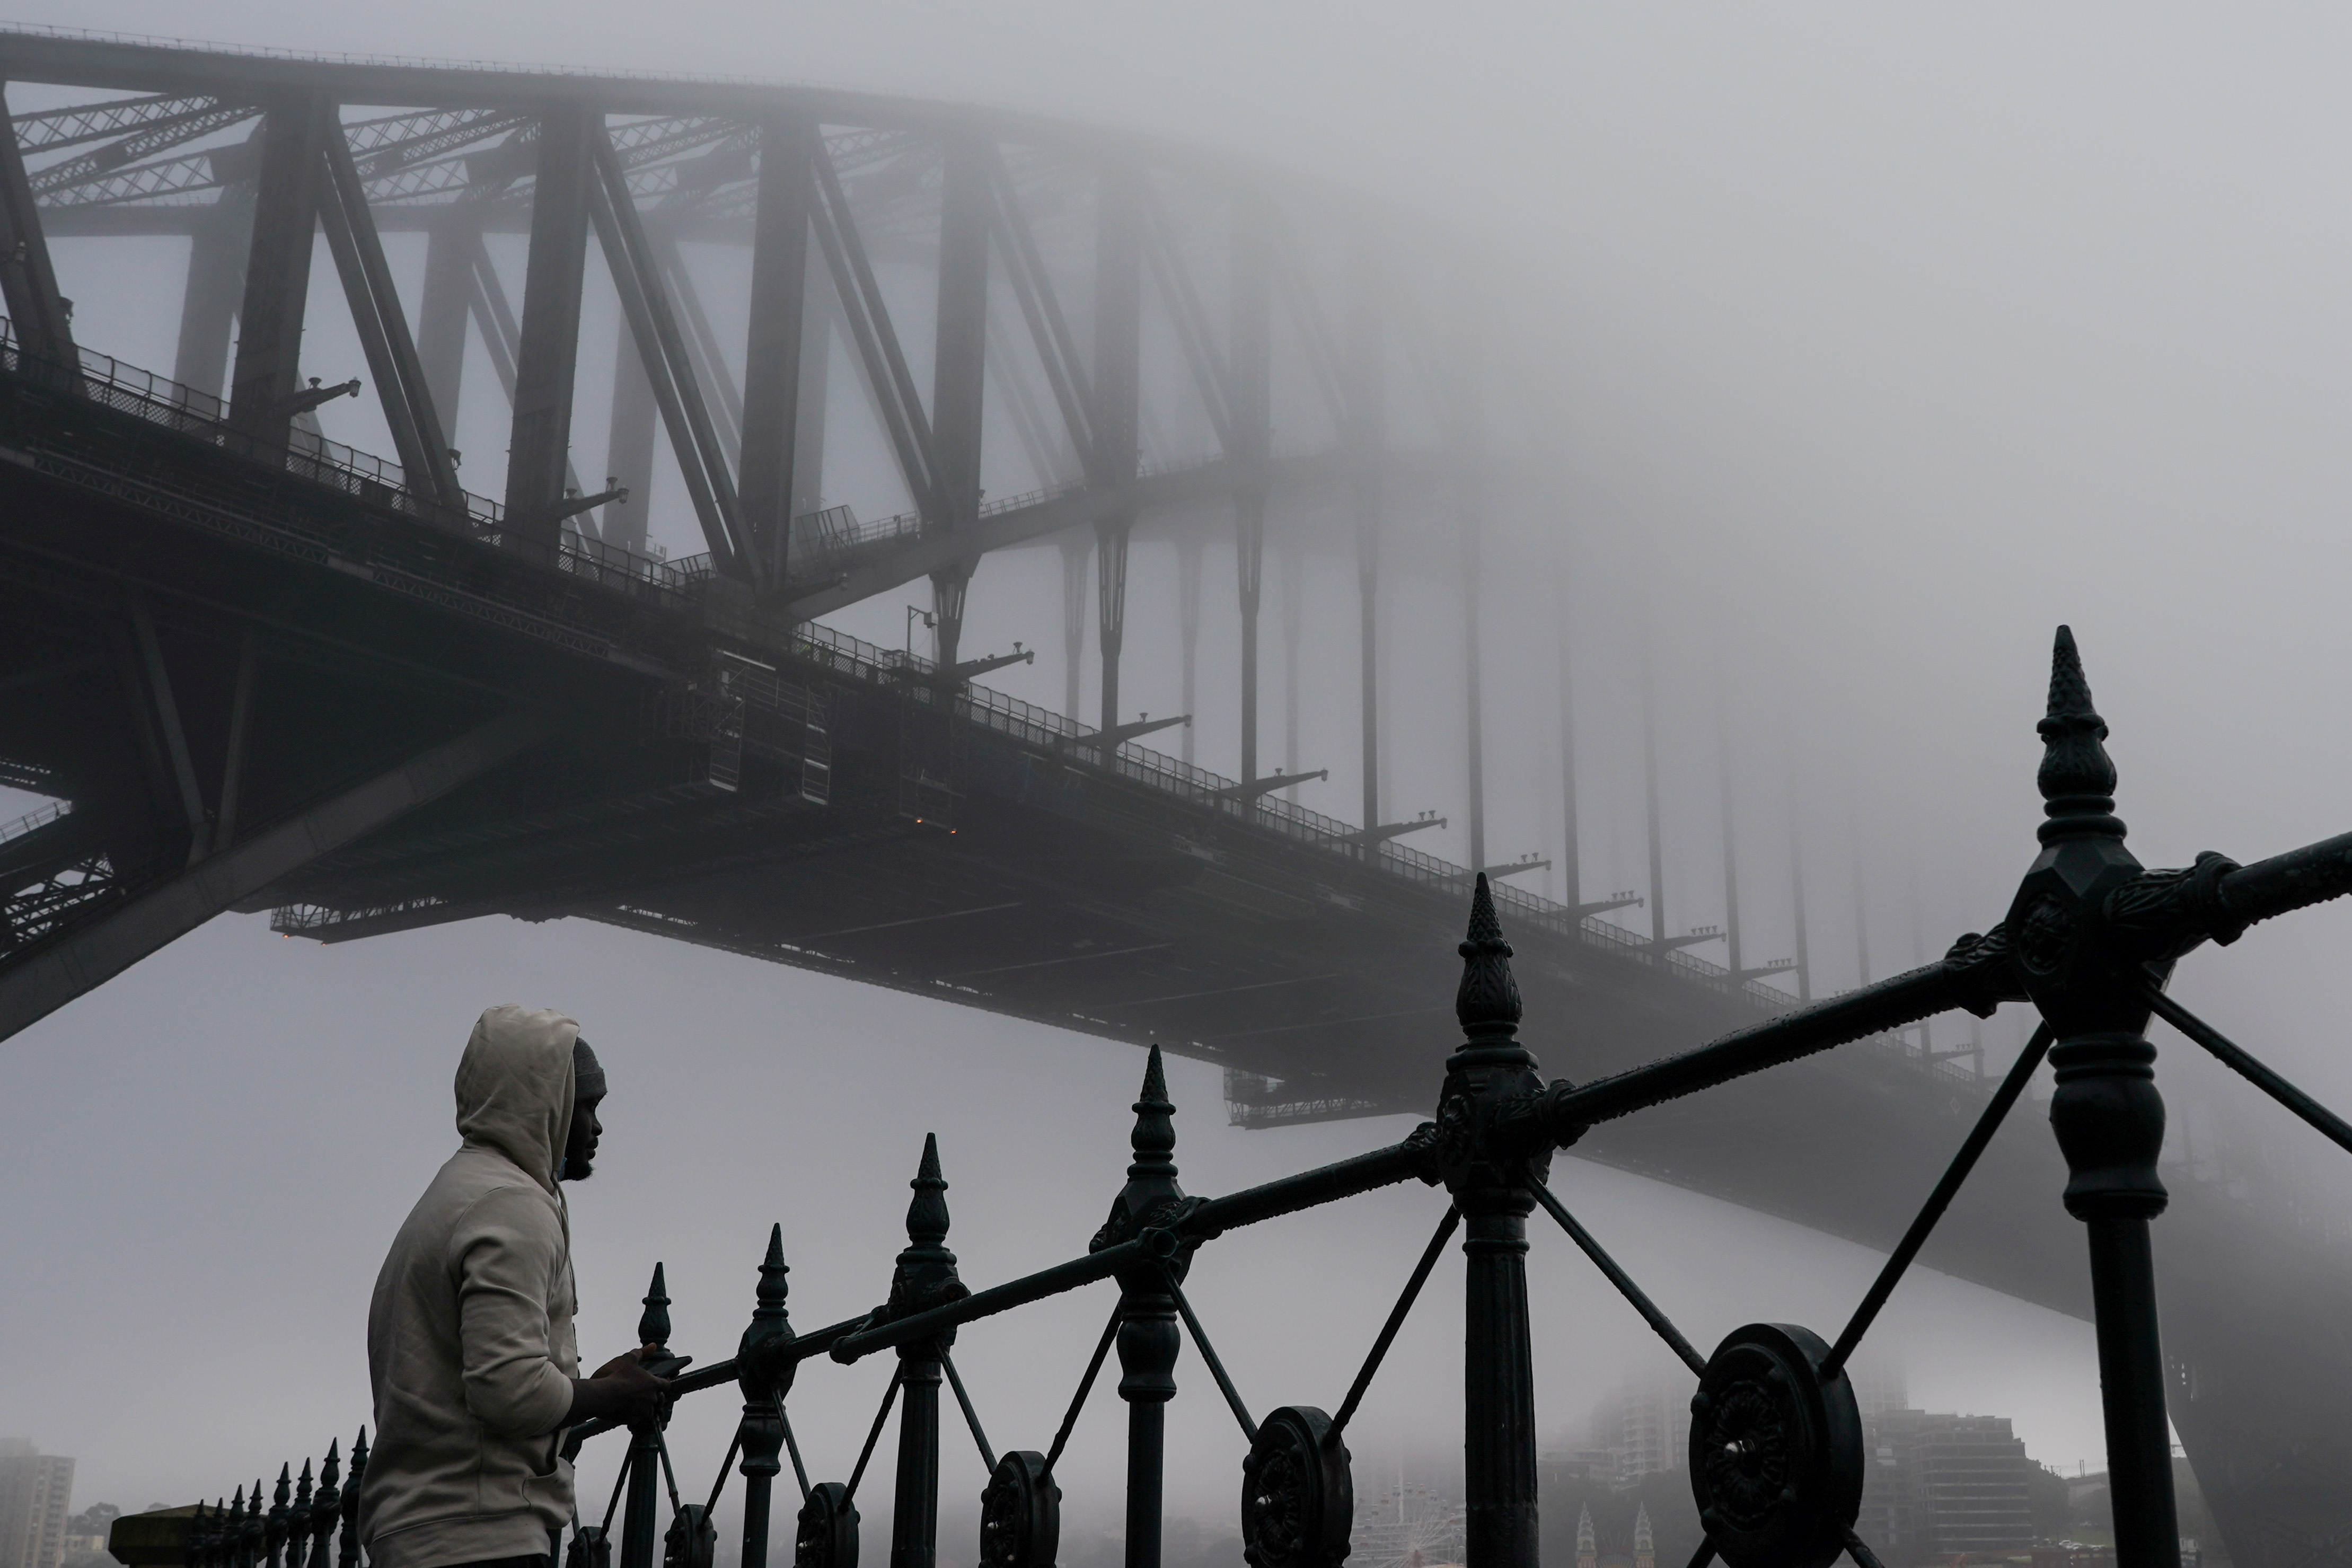 A man takes in the waterfront view underneath the Sydney Harbour Bridge, seen shrouded in fog, during a lockdown to curb the spread of a coronavirus disease (COVID-19) outbreak in Sydney, Australia, June 30, 2021. REUTERS/Loren Elliott